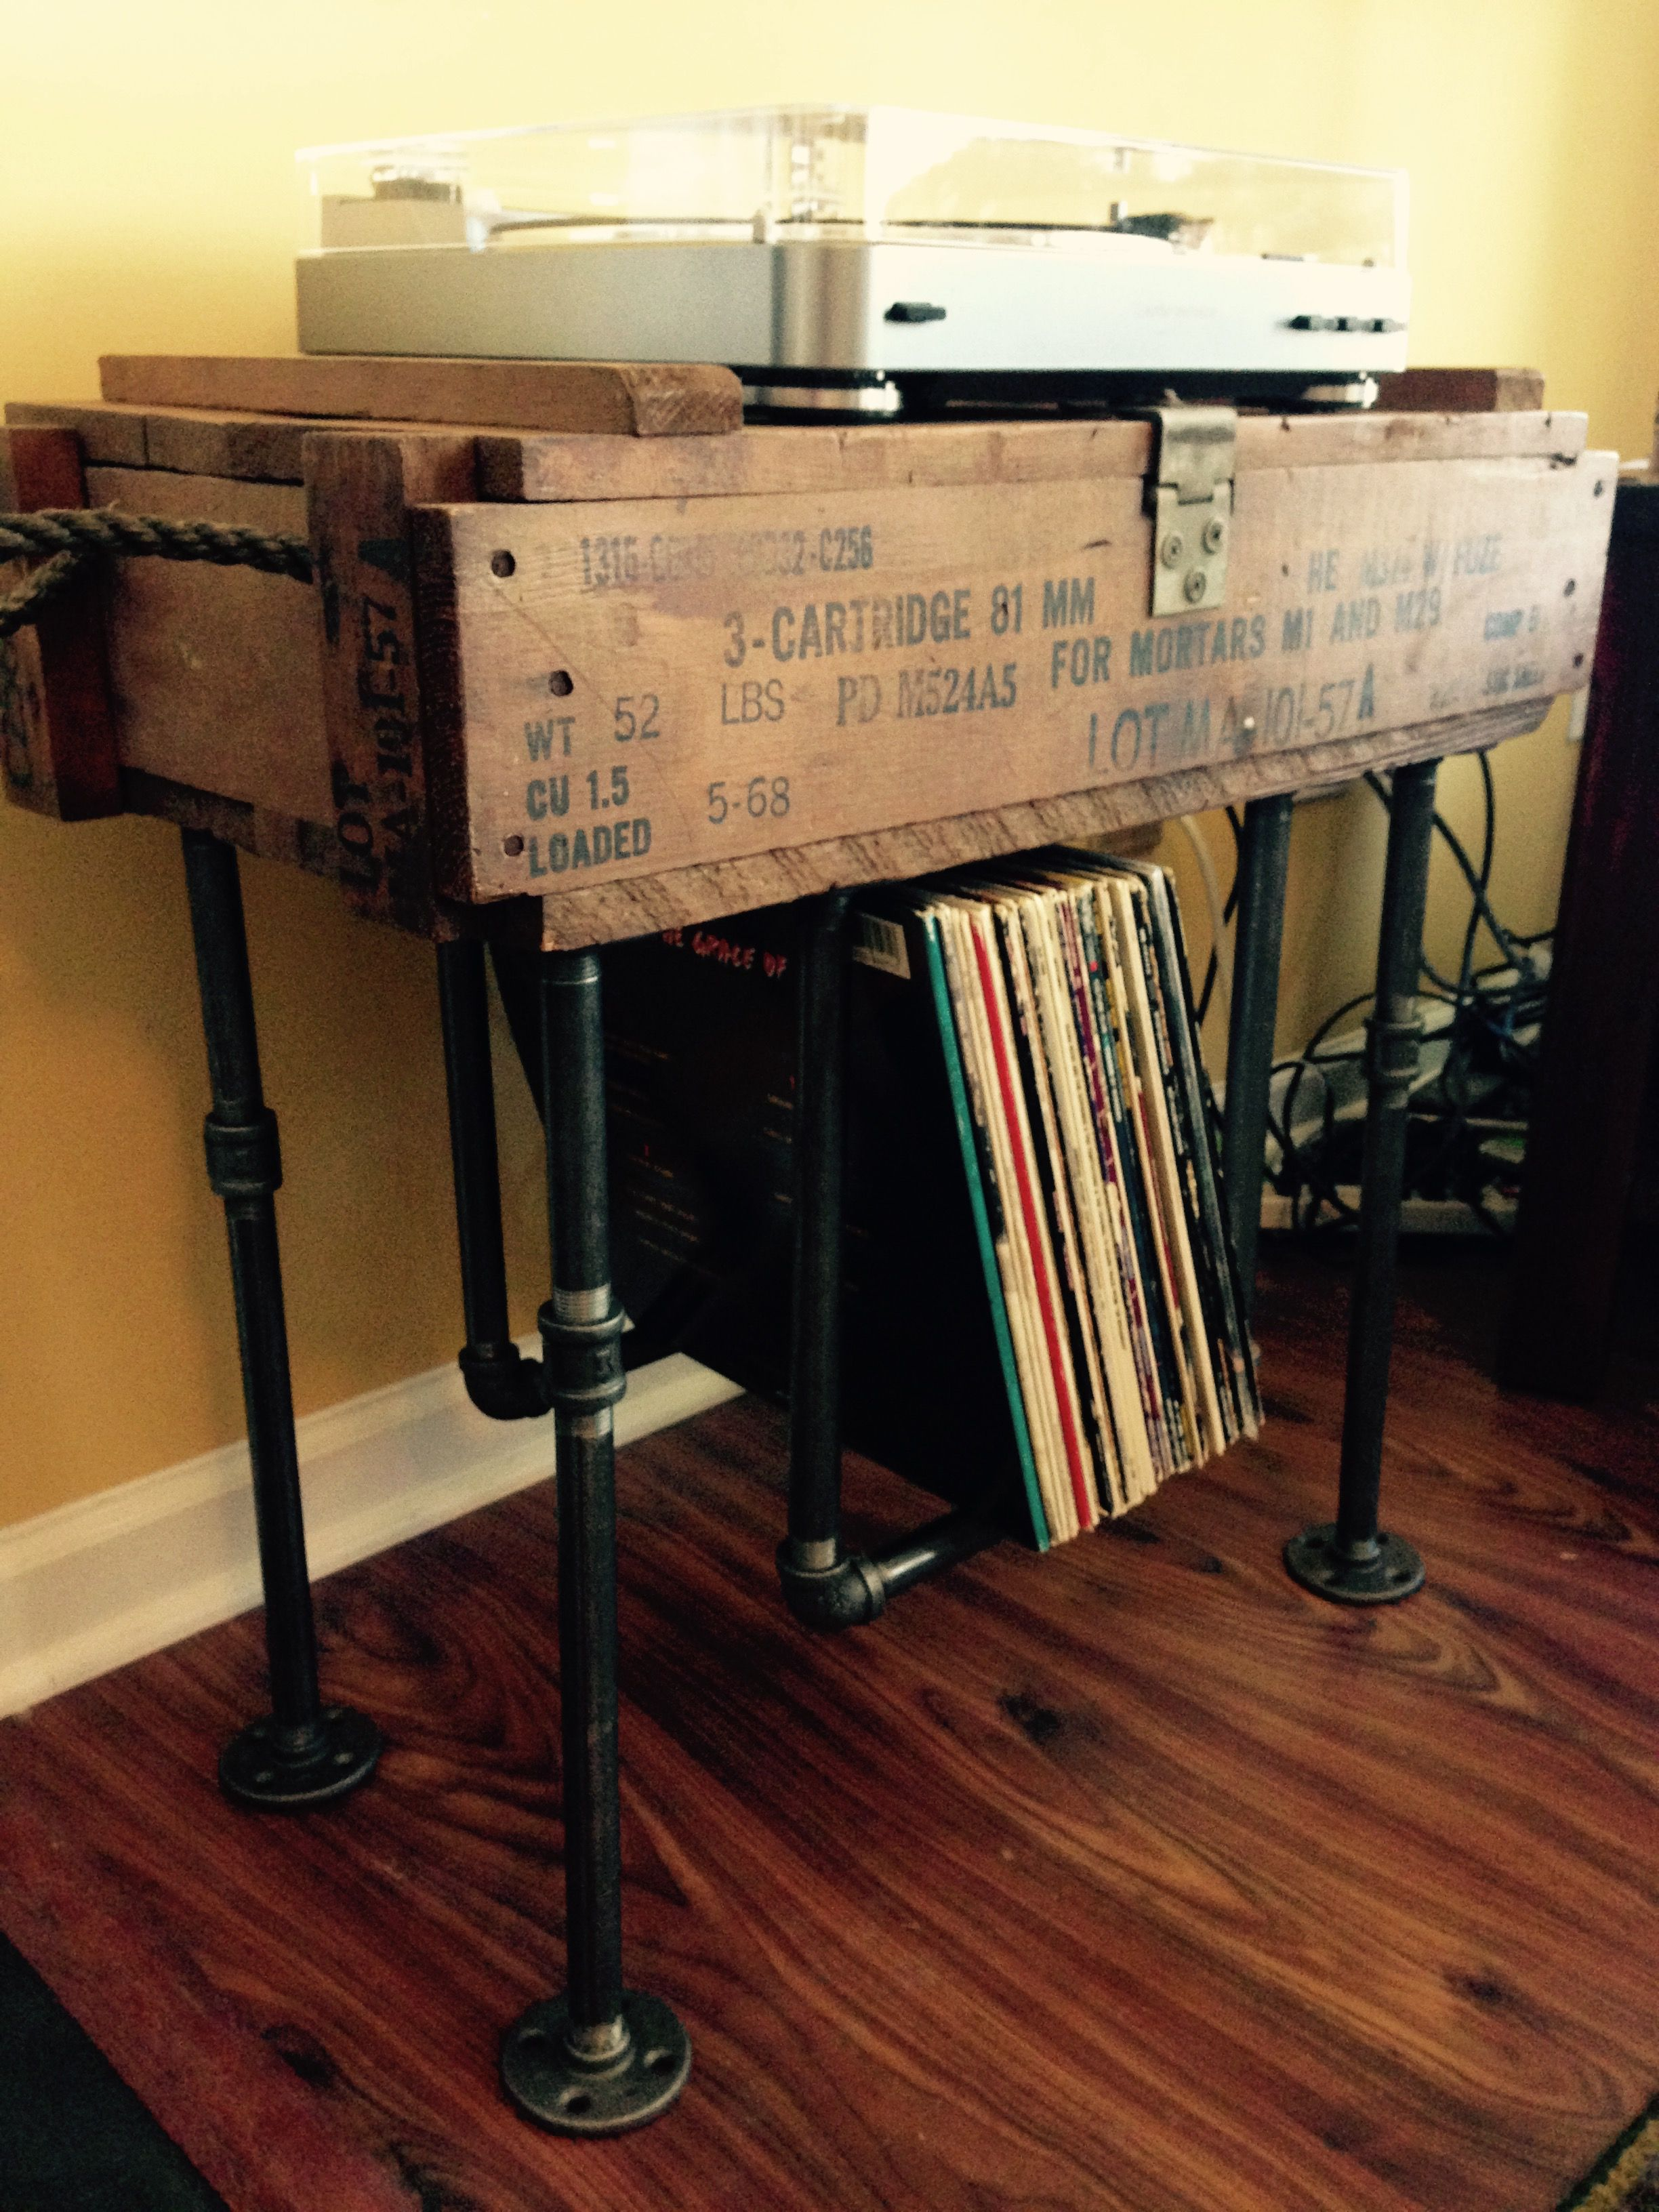 DIY Vinyl record storage Homemade DIY record storage made by Kevin Baucom with industrial pipe and old ammo box. & DIY Vinyl record storage Homemade DIY record storage made by Kevin ...